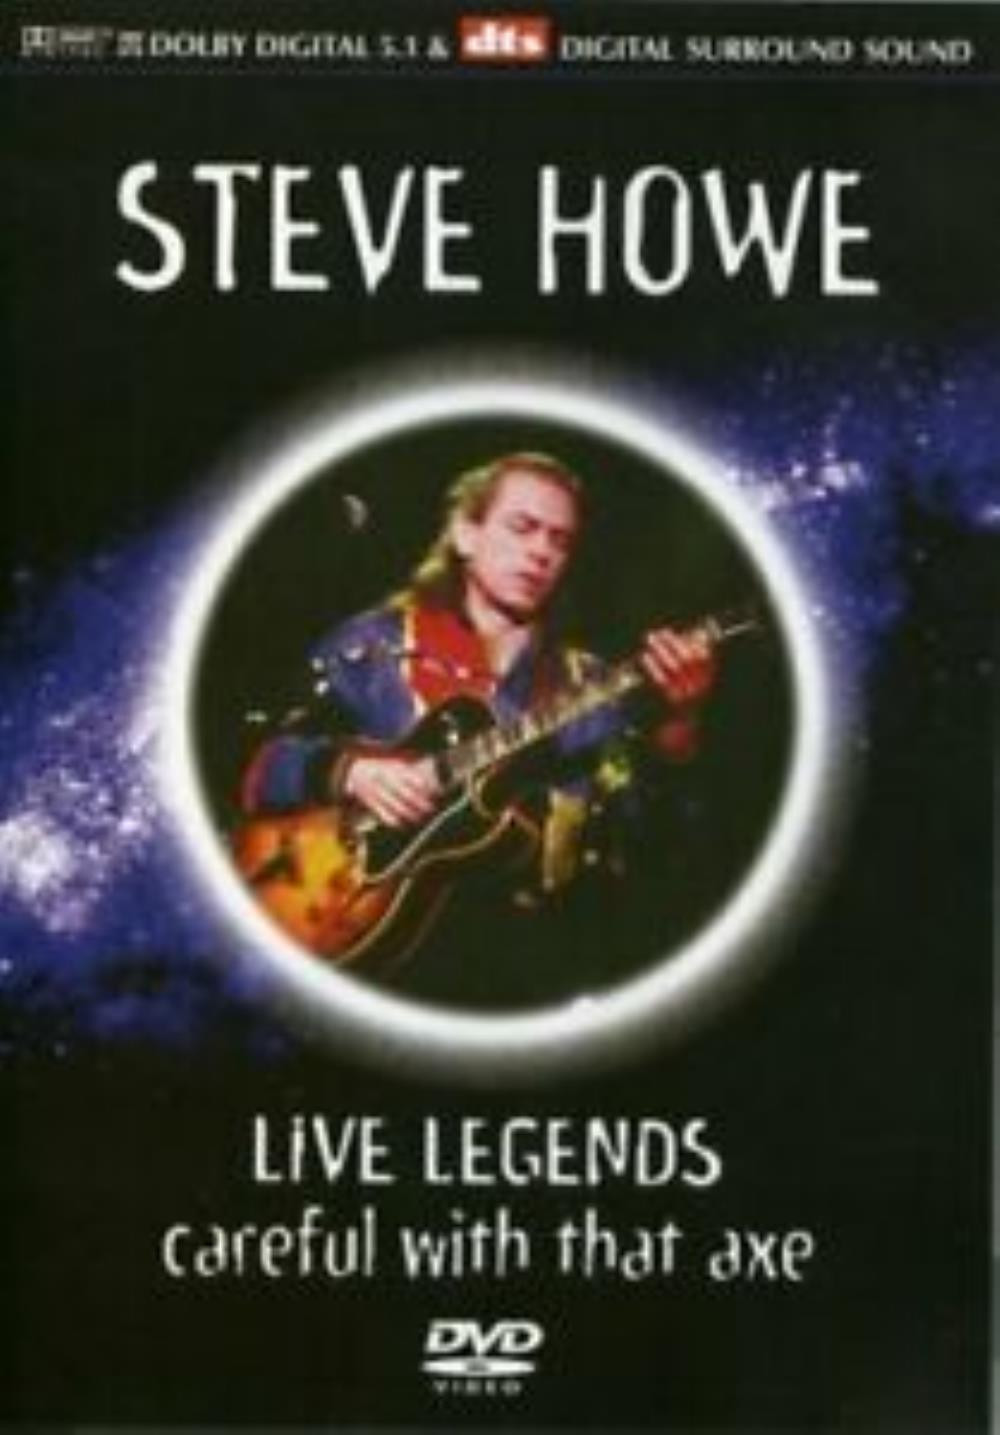 Live Legends - Careful With That Axe by HOWE, STEVE album cover